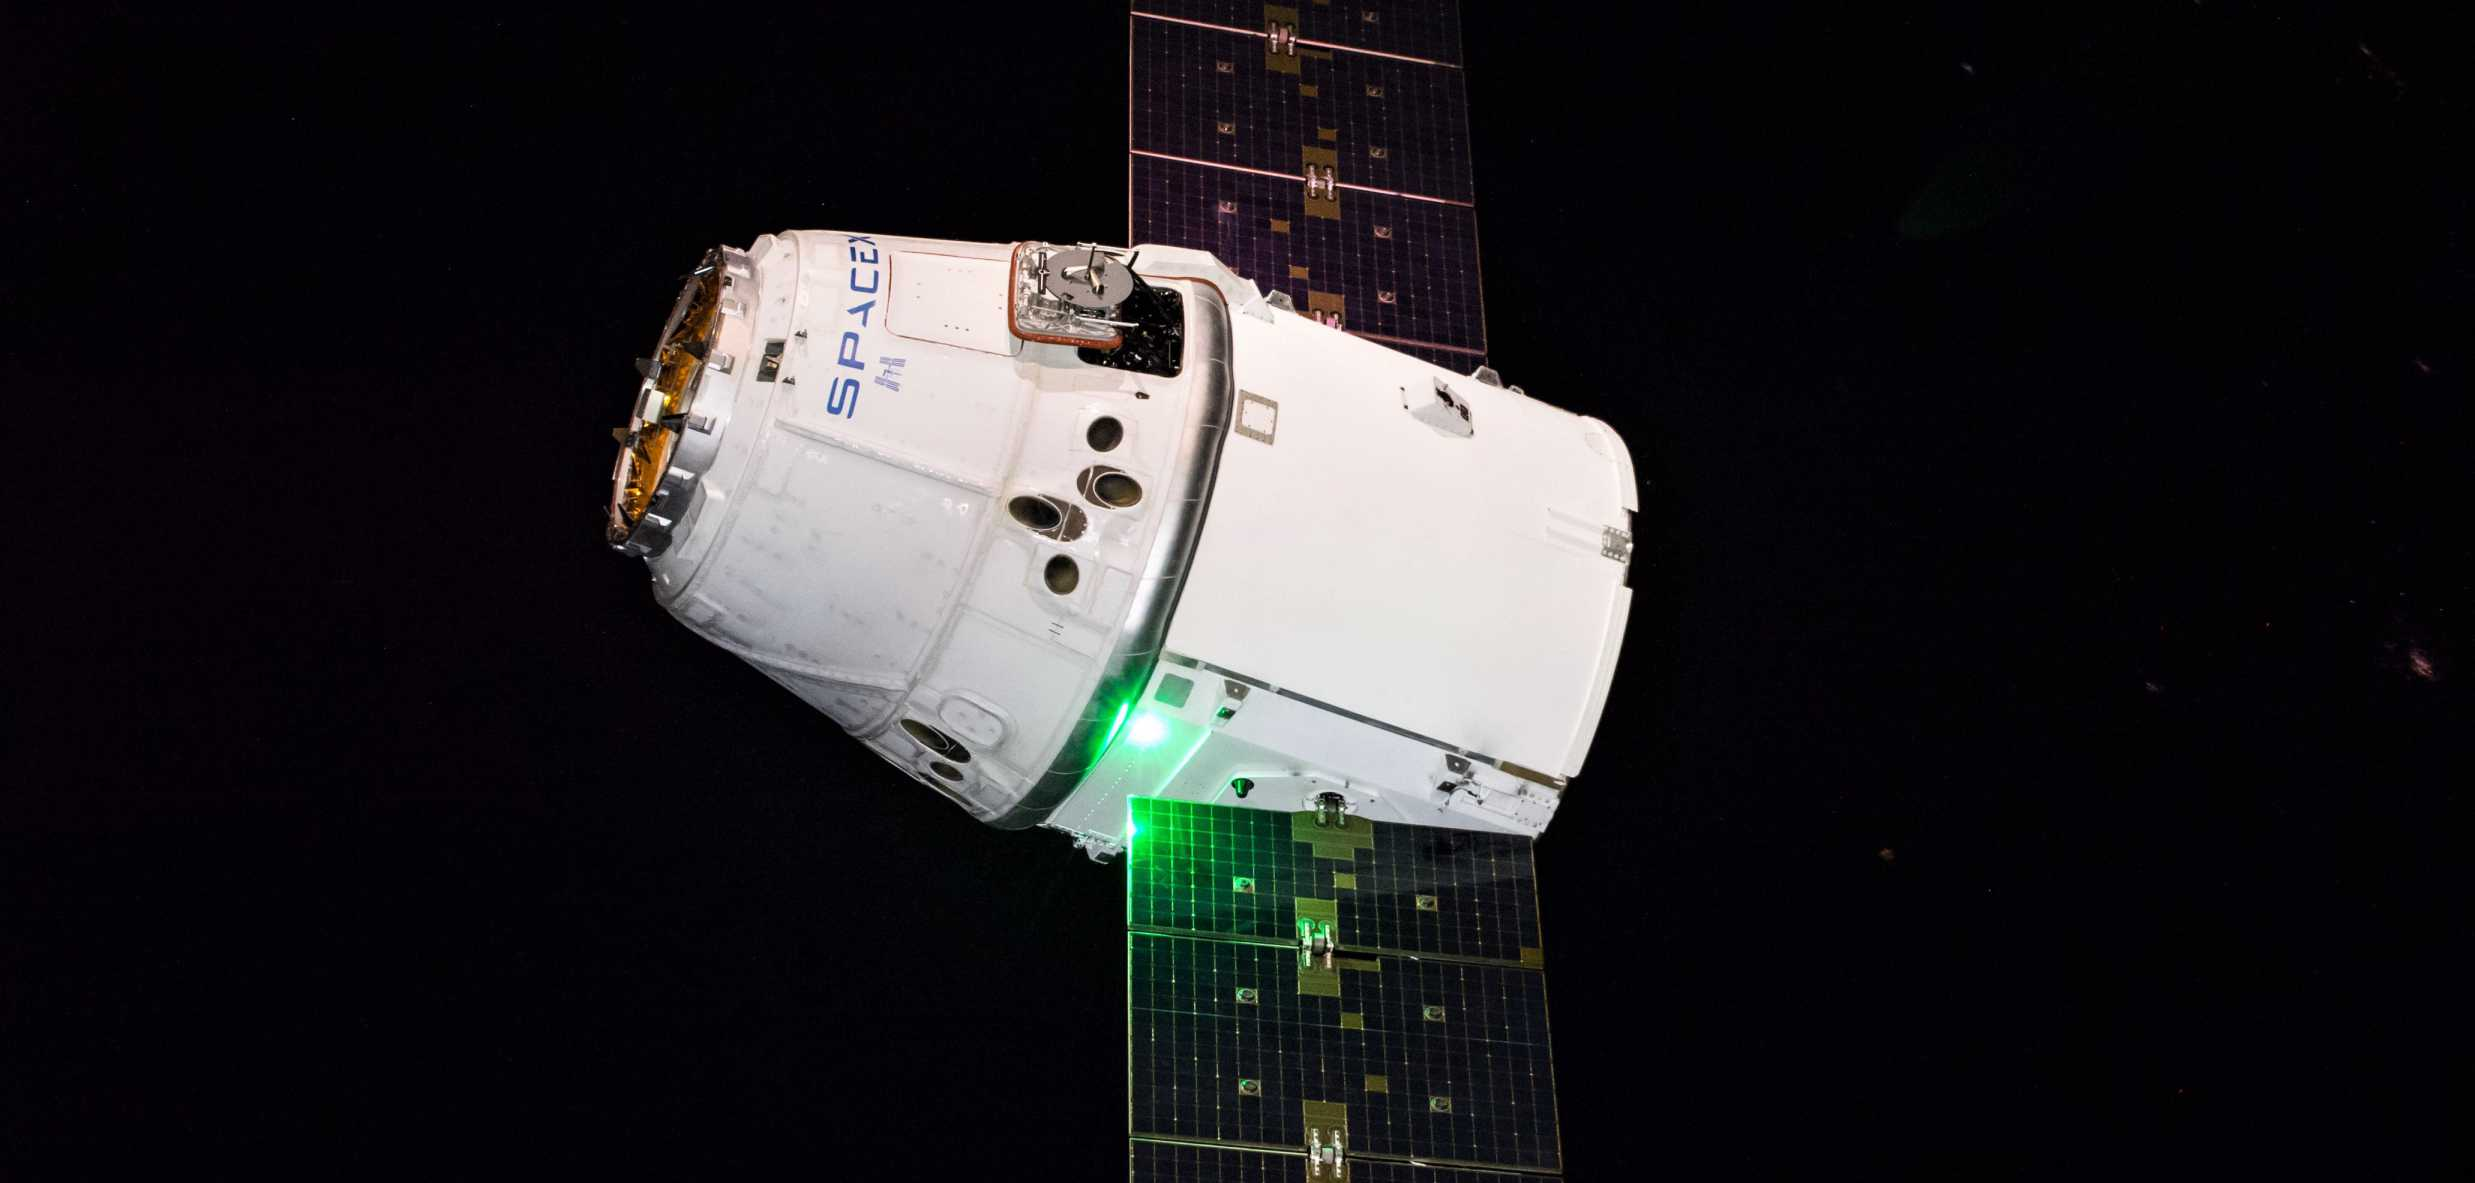 CRS-16 Cargo Dragon ISS berthing (NASA) 1 crop (c)